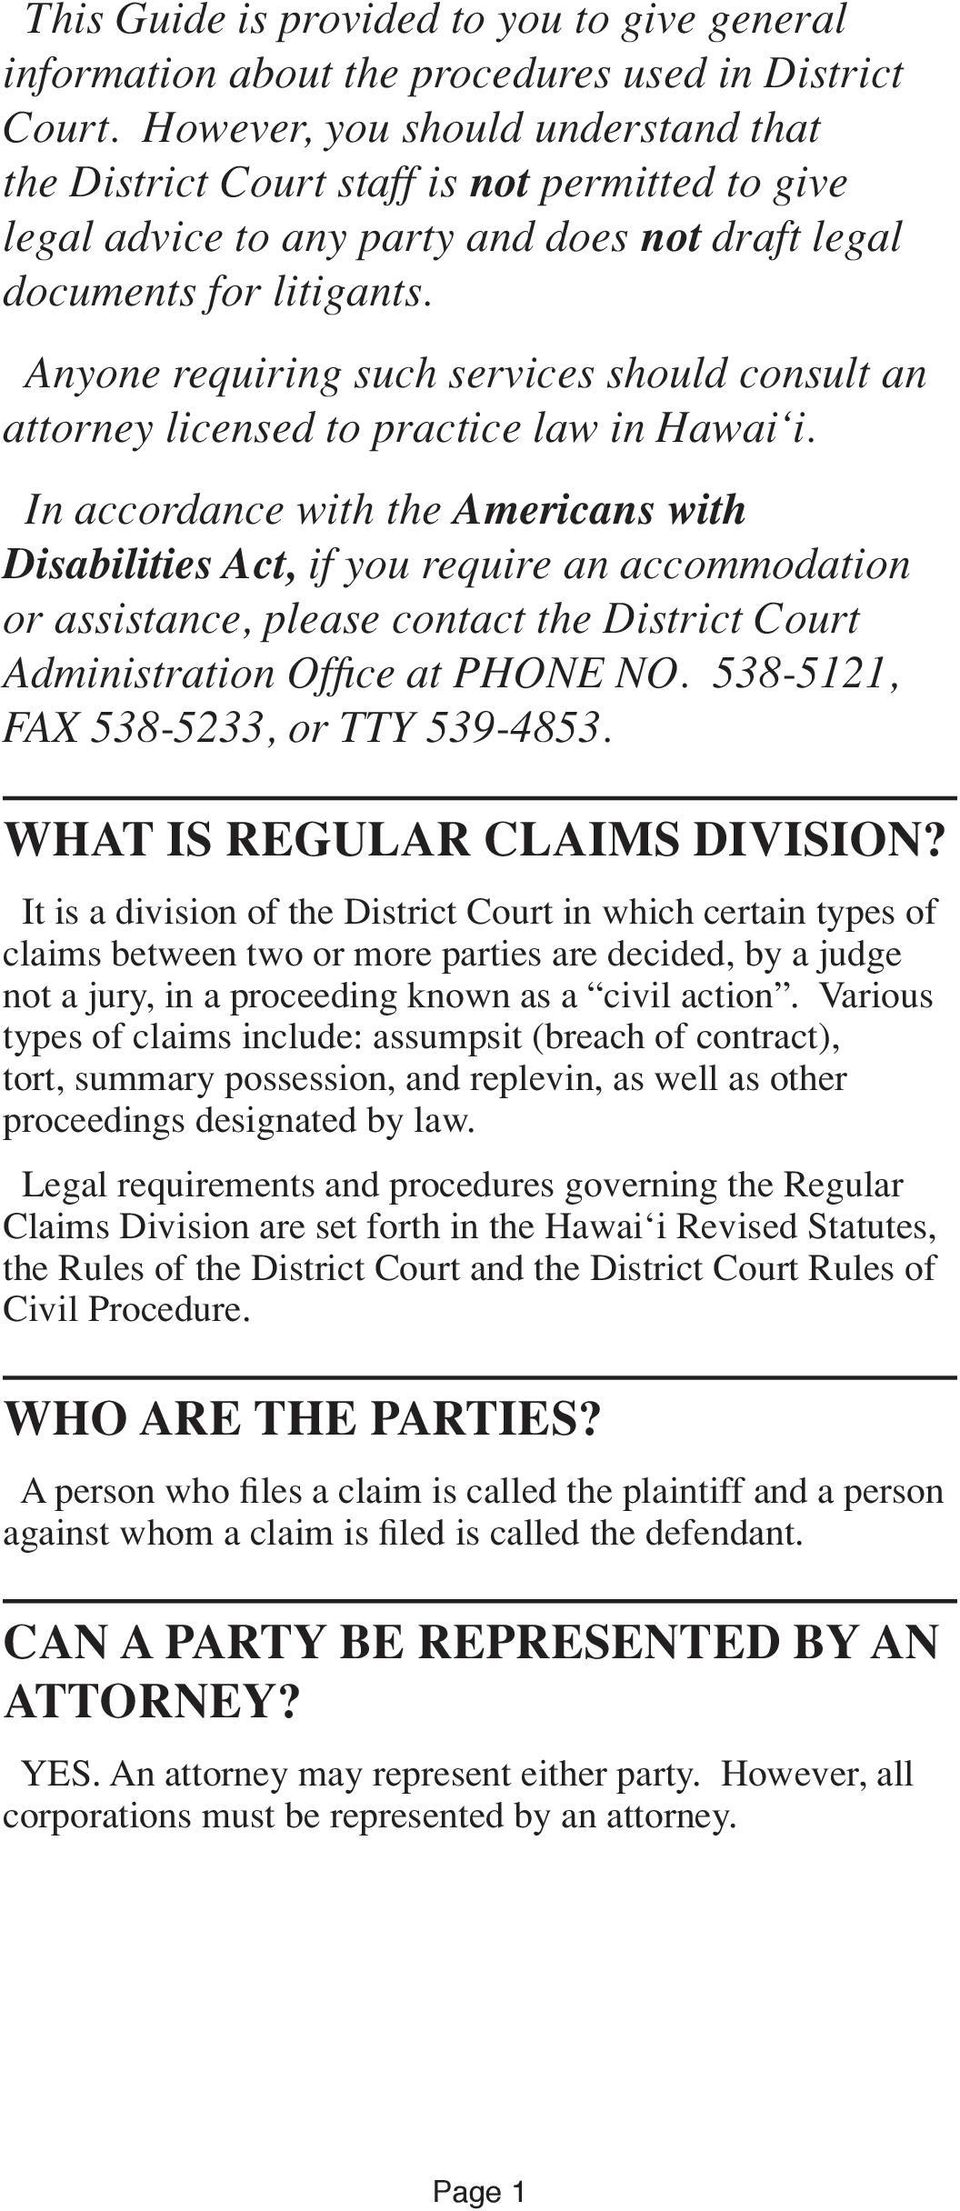 Anyone requiring such services should consult an attorney licensed to practice law in Hawai i.